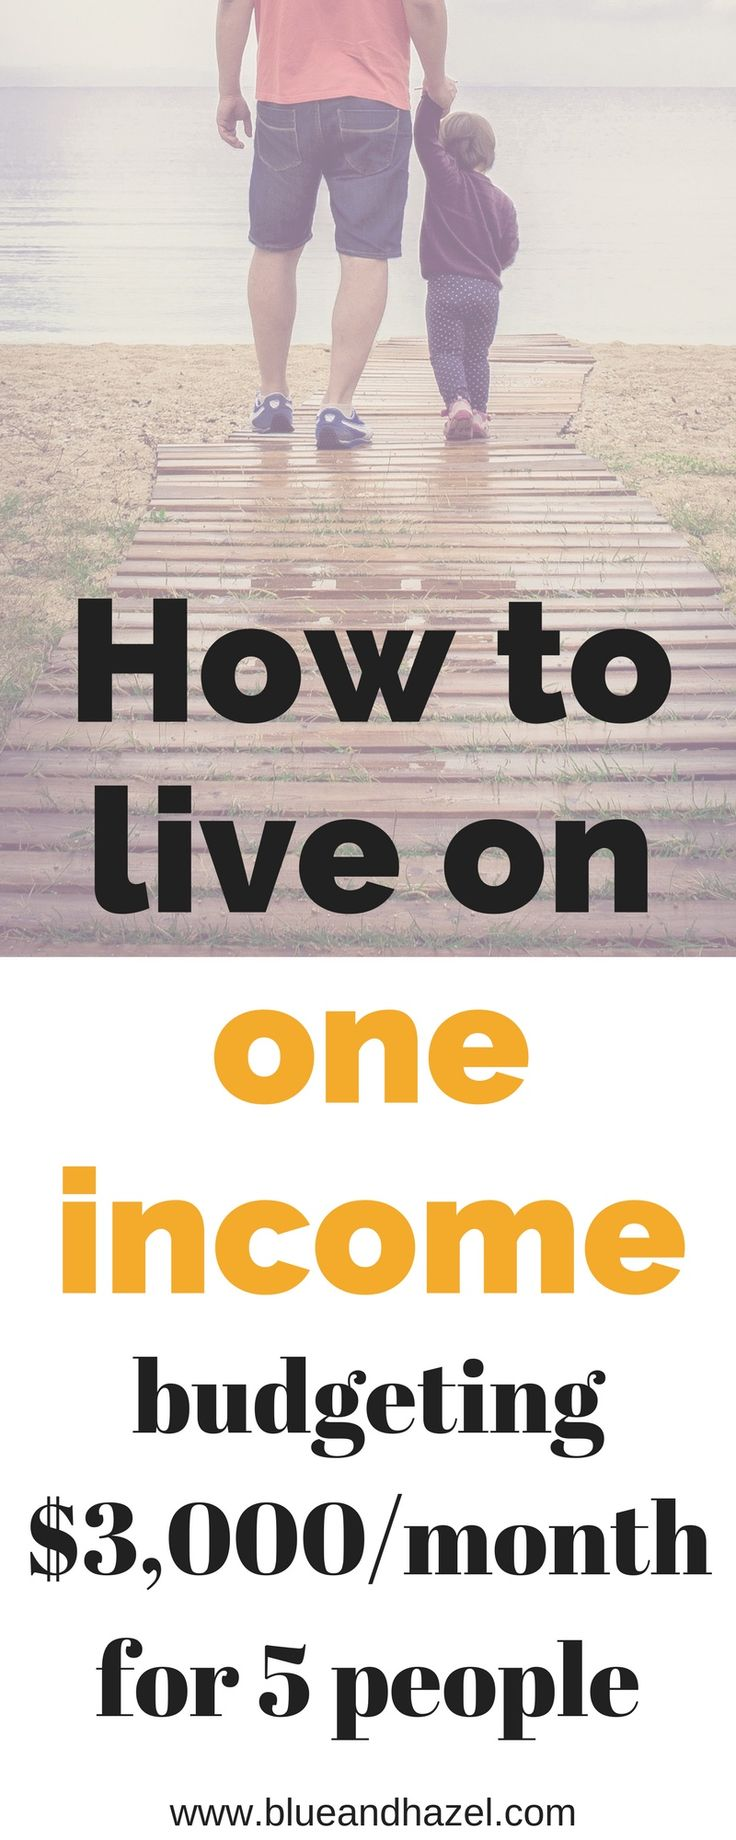 One family one income 5 people. Want to be a stay at home mom or simply live on one income and save the other? See what we buy, and don't buy with three kids. #oneincome #blueandhazel #livingonabudget #budget #sahm